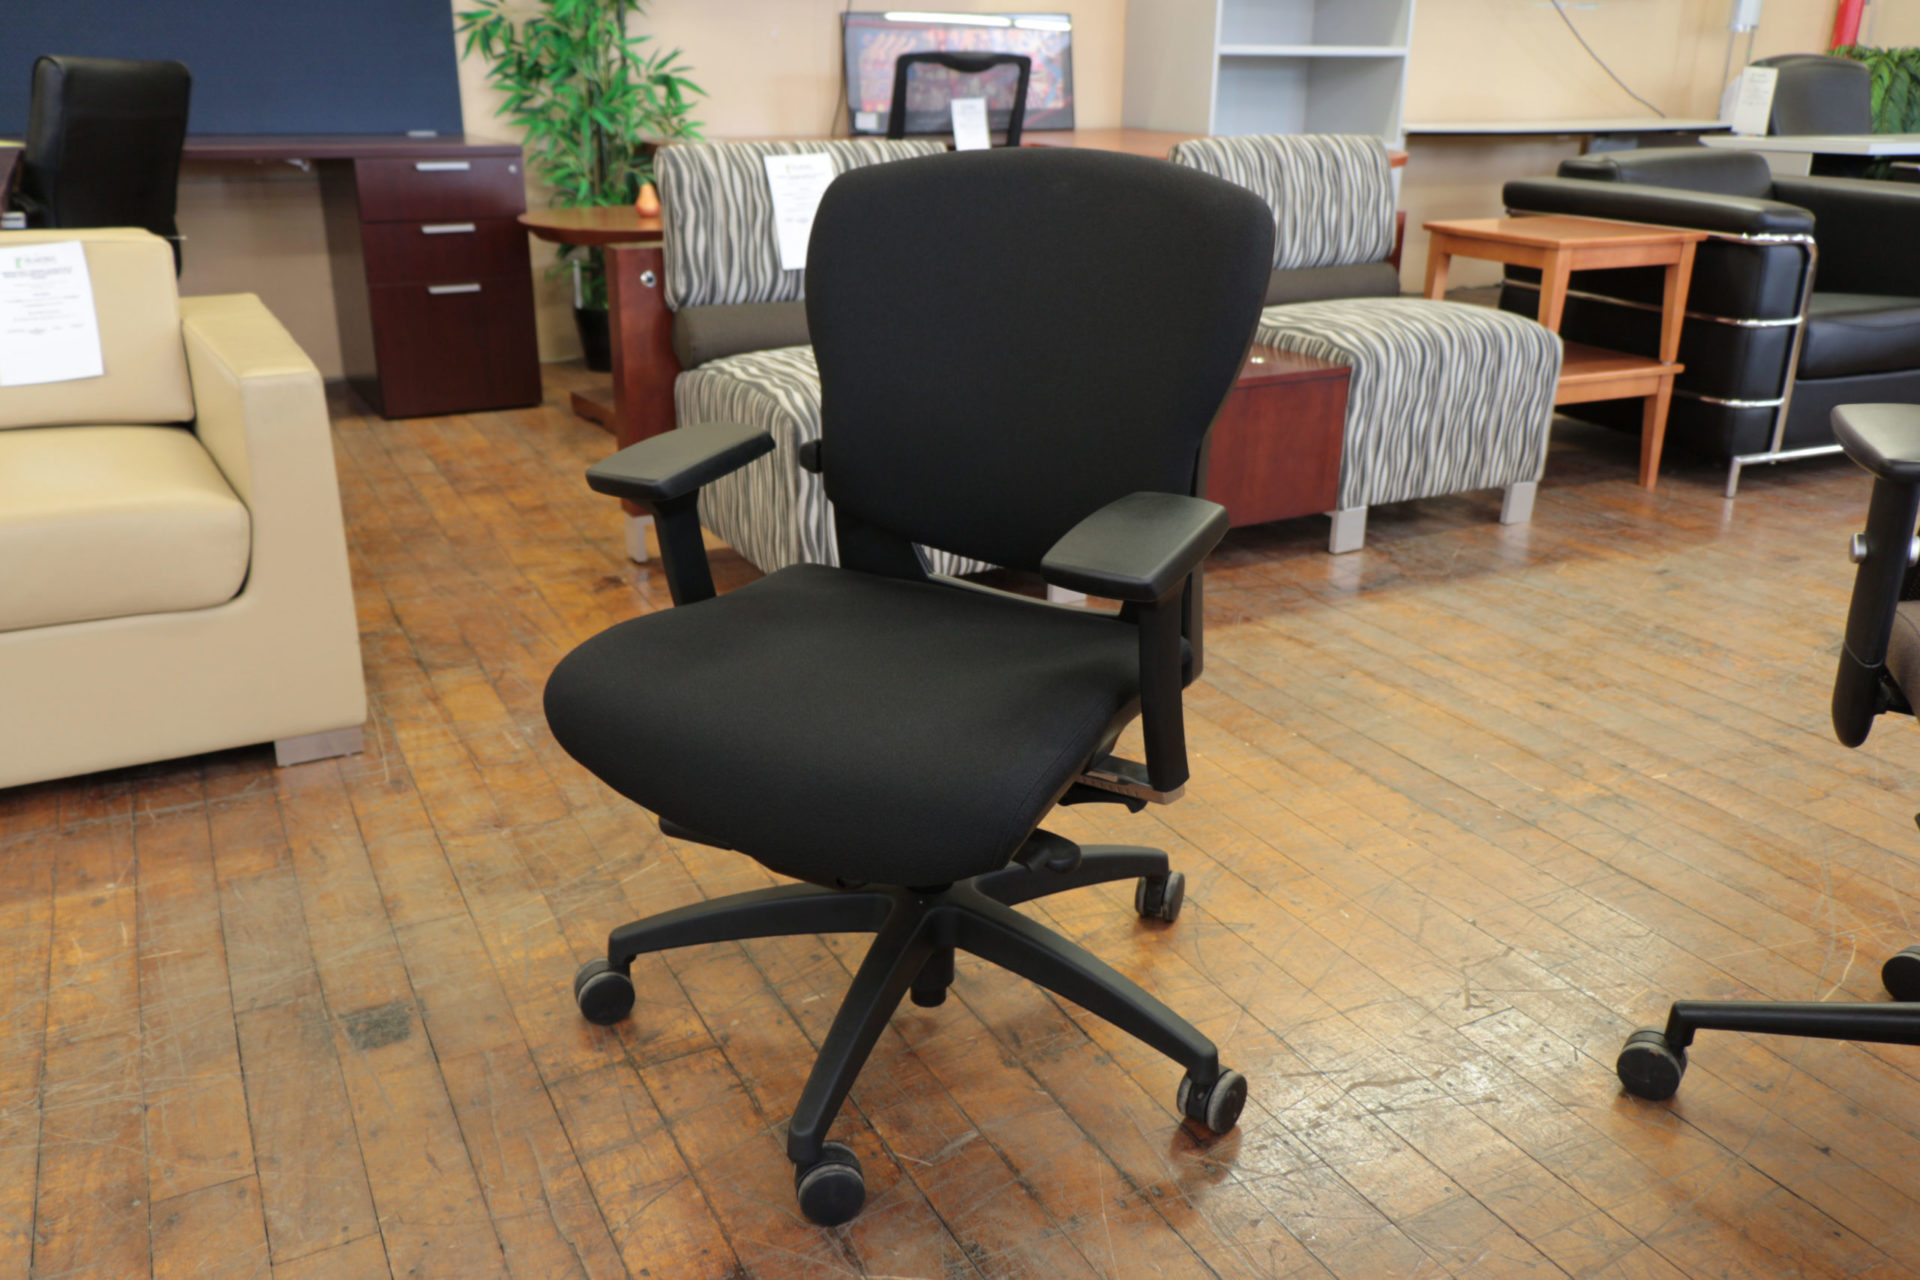 peartreeofficefurniture_peartreeofficefurniture_peartreeofficefurniture_img_8708.jpg